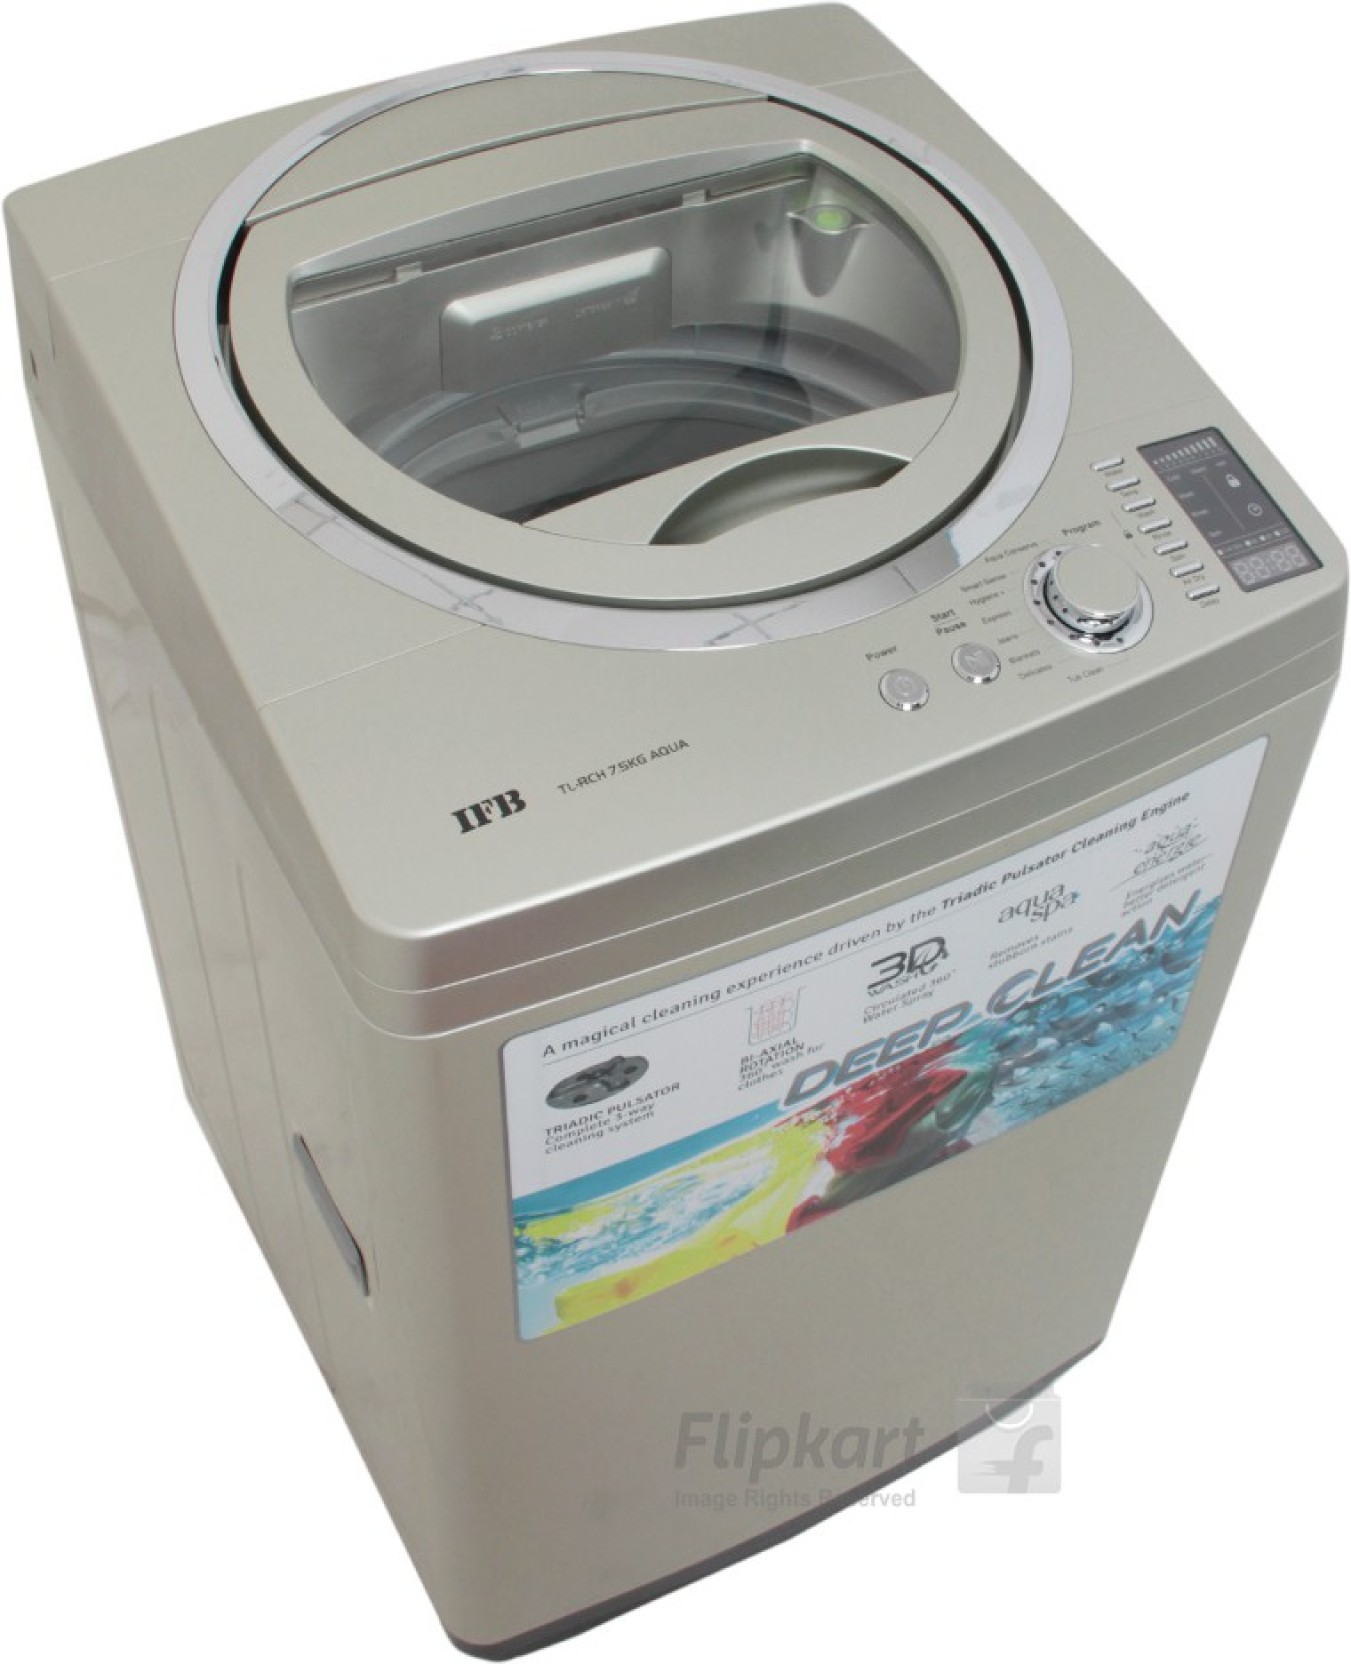 Ifb Washing Machine Drum Bearing Price : ifb 7 5 kg fully automatic top load washing machine gold price in india buy ifb 7 5 kg fully ~ Hamham.info Haus und Dekorationen